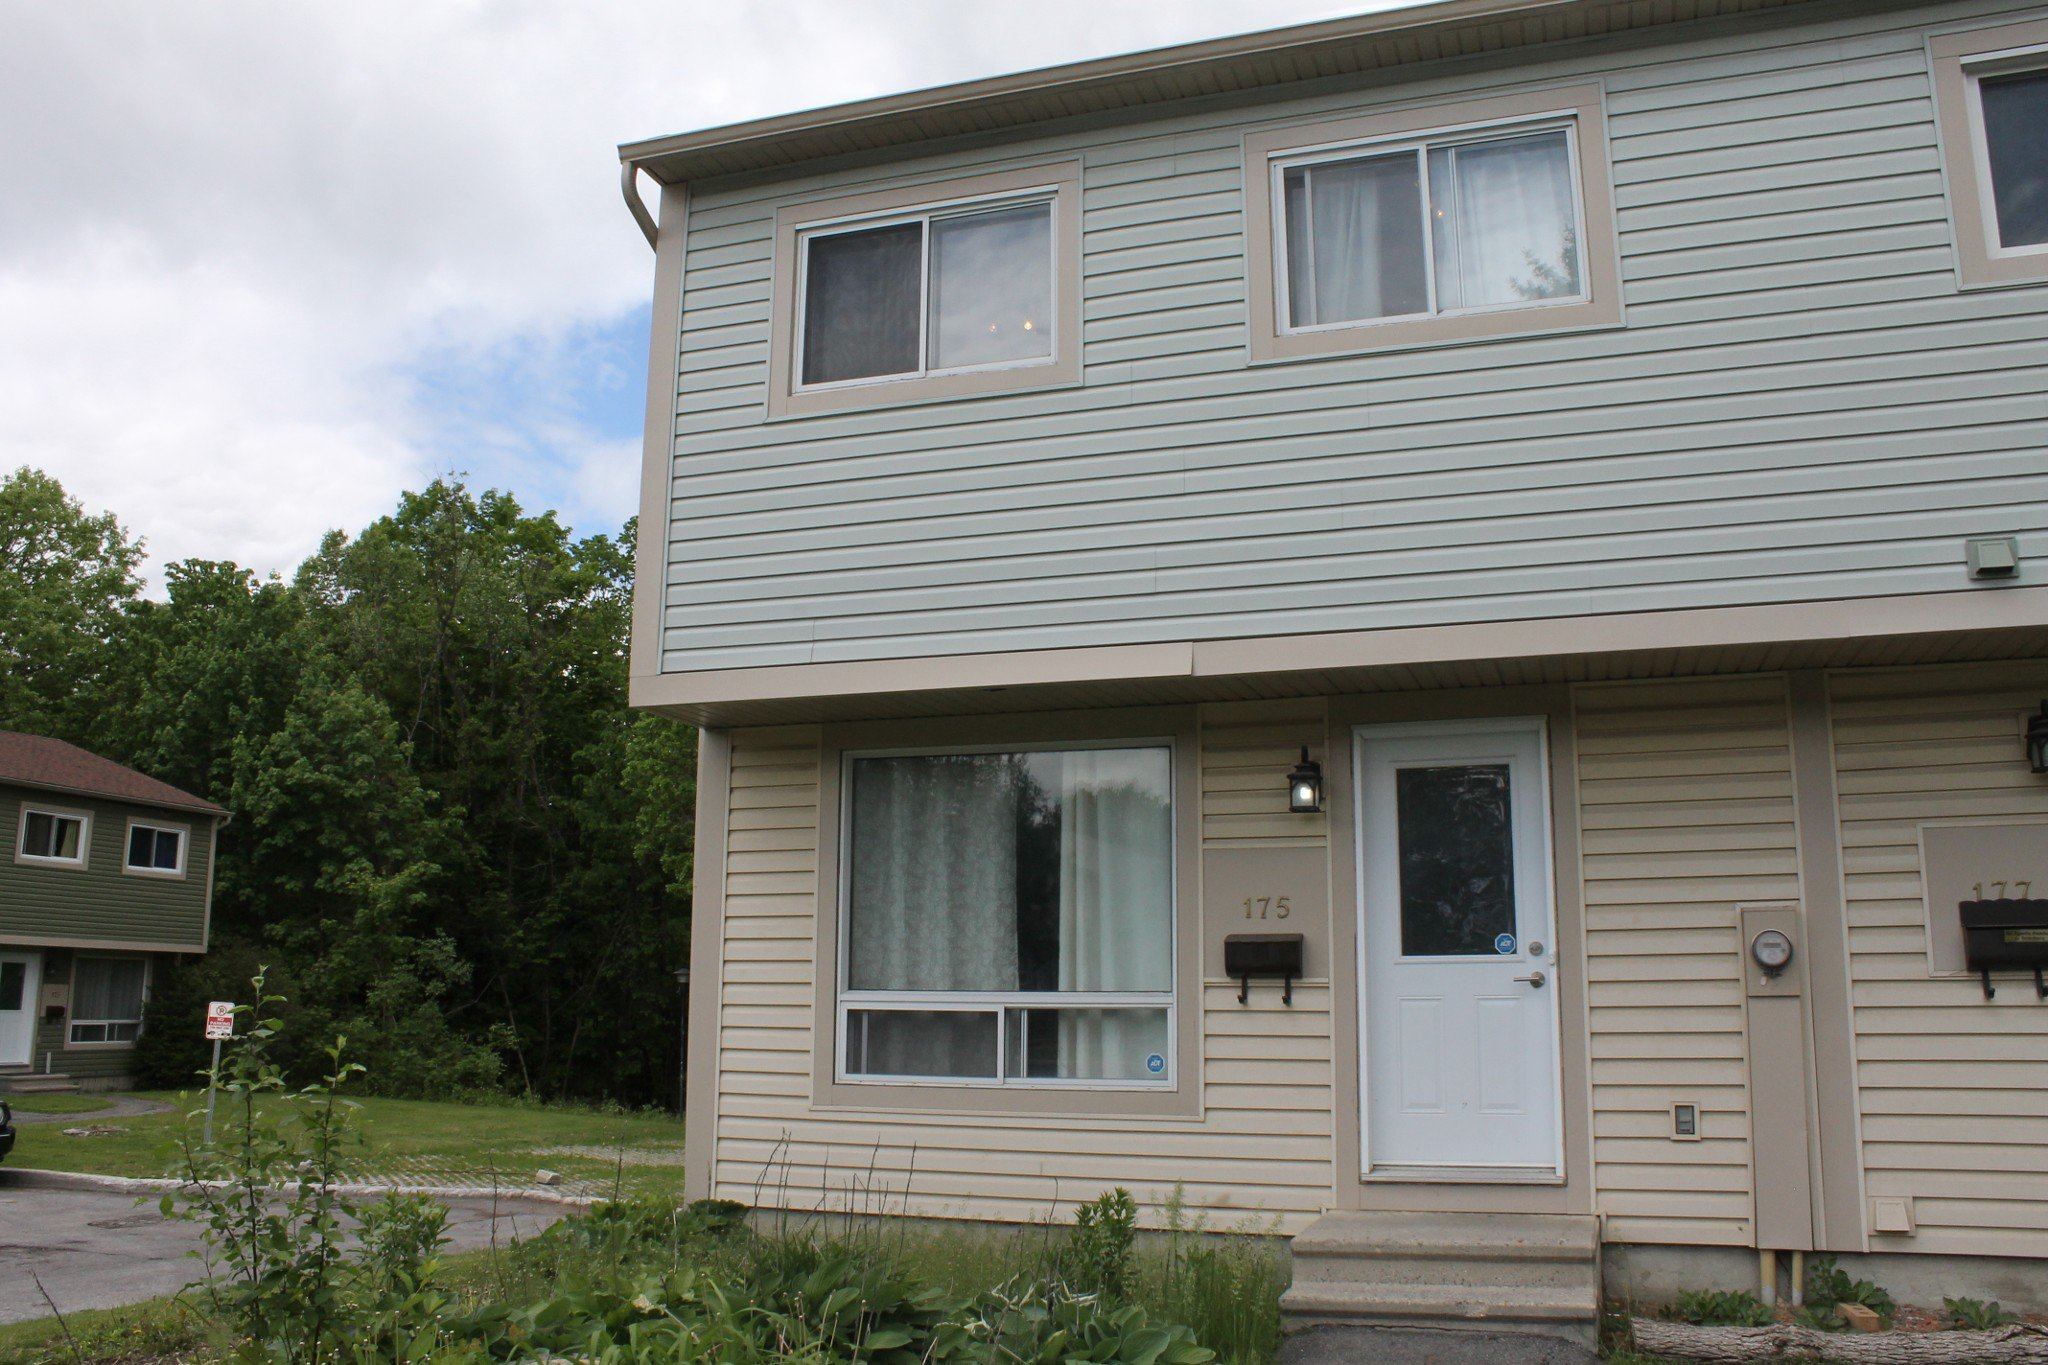 Main Photo: 175 Teal Crescent in Ottawa: House for sale